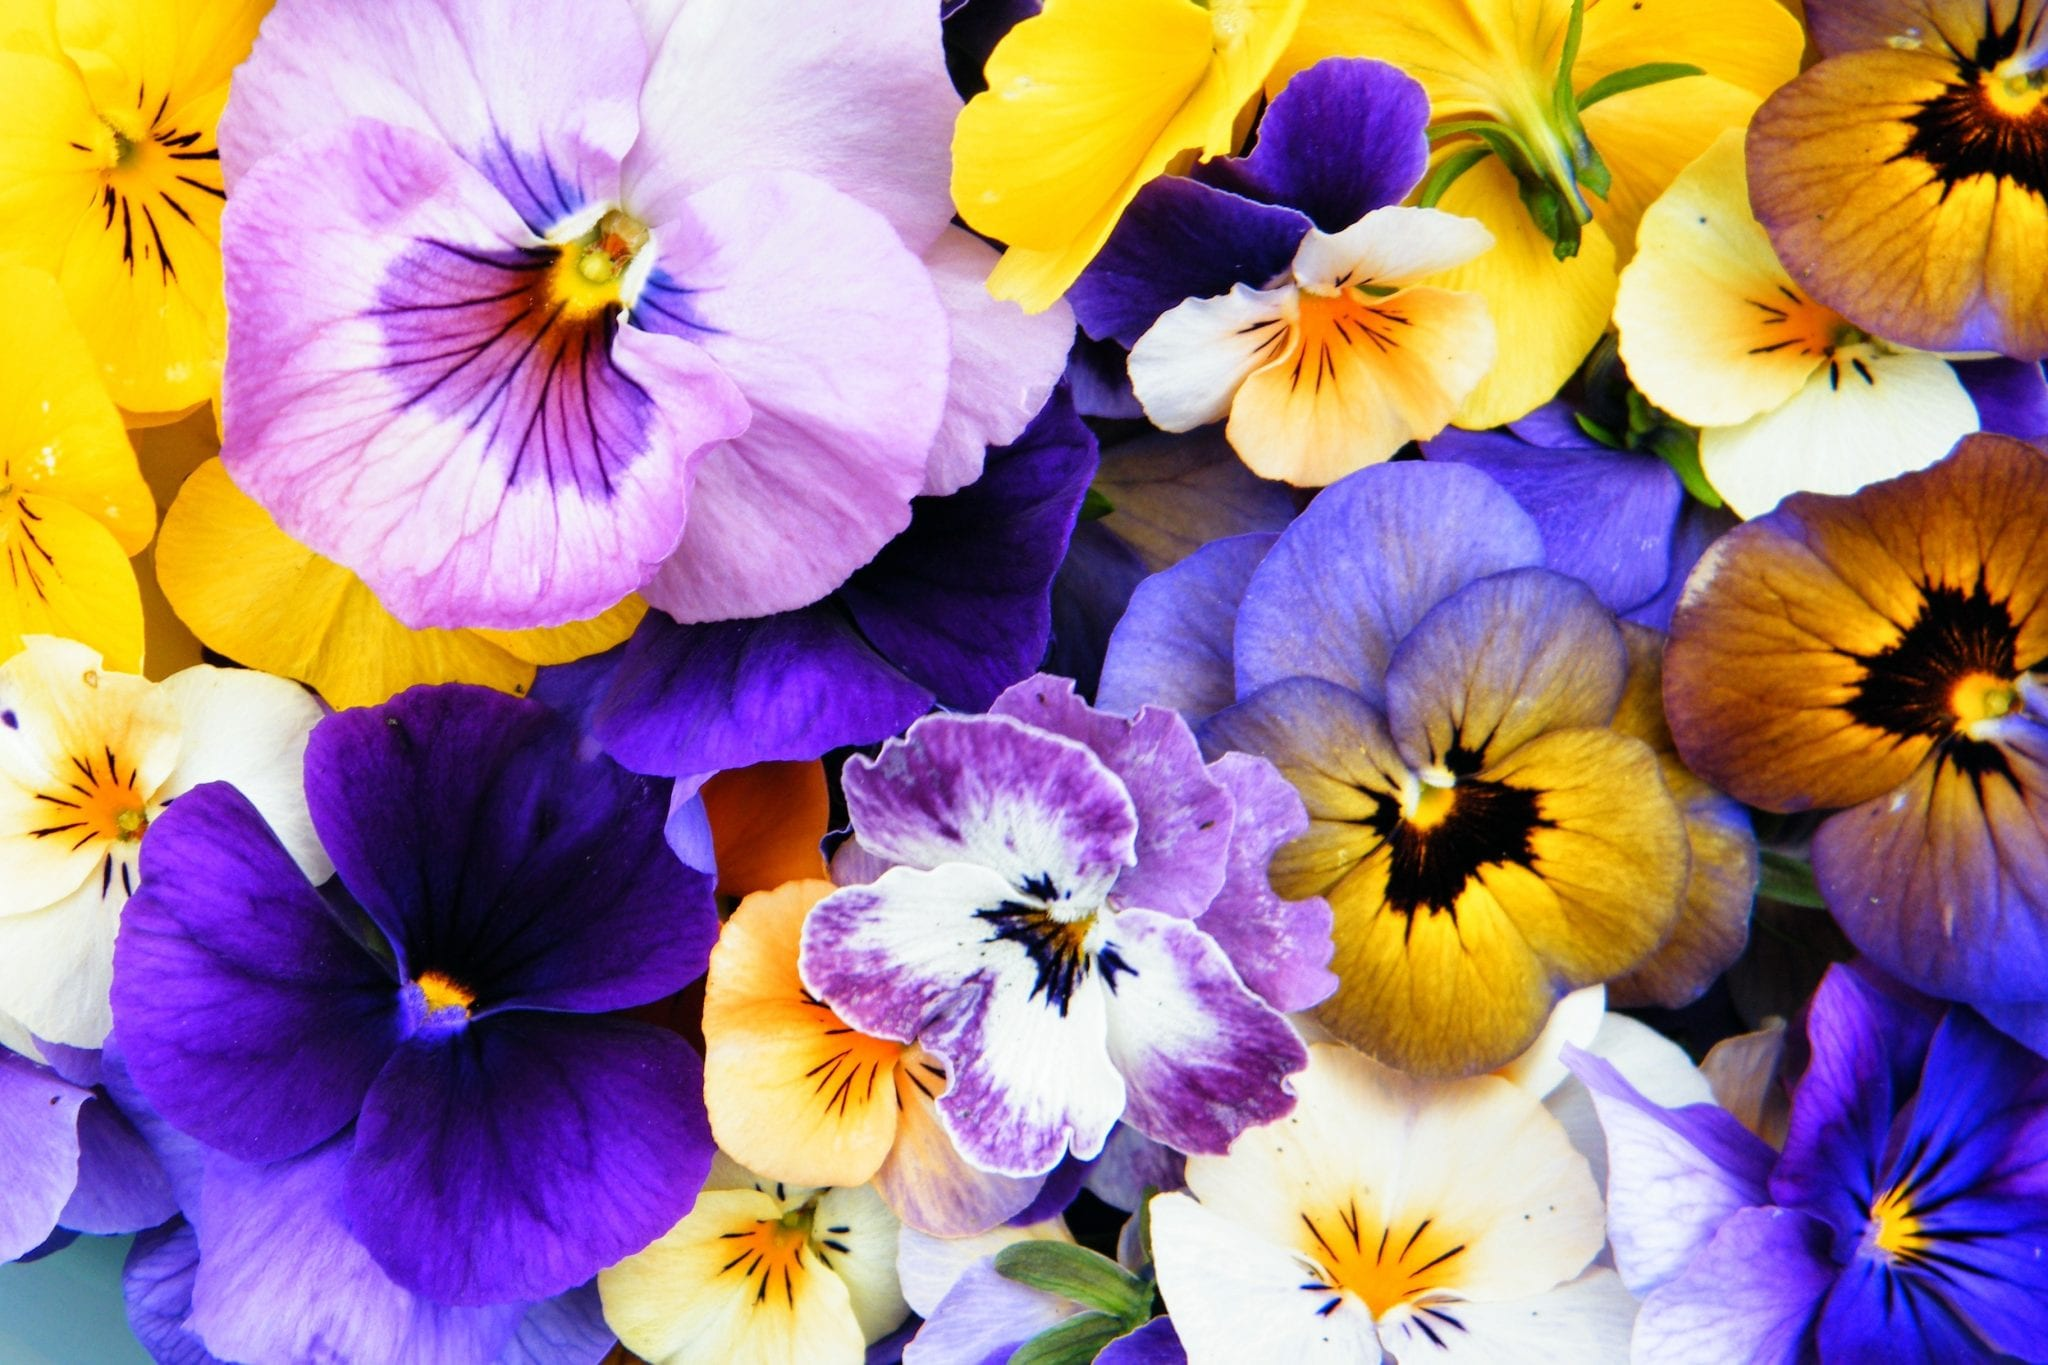 violas ready for pressing